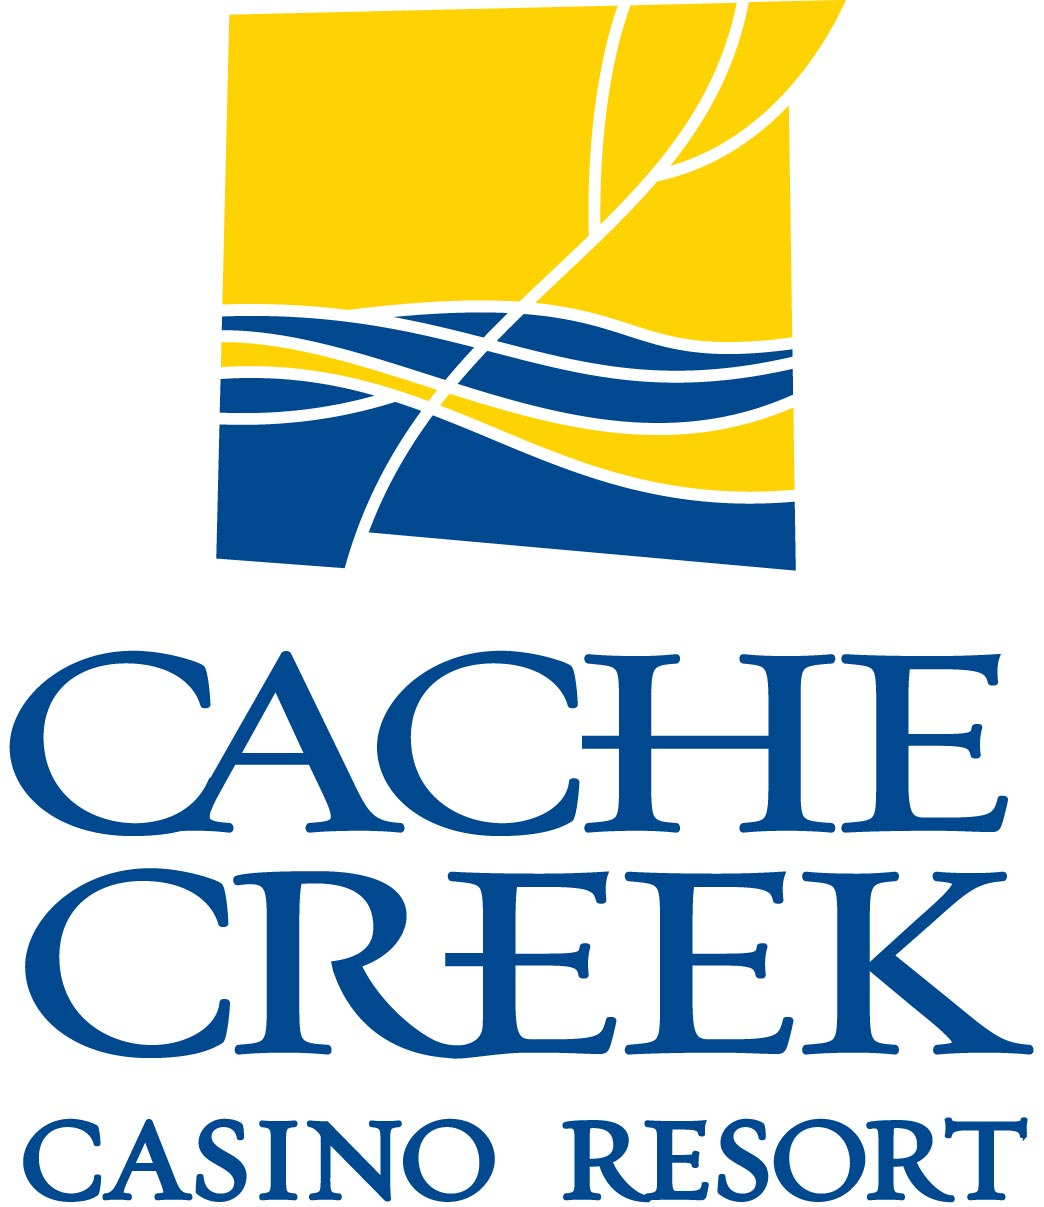 Cache Creek Casino Resort's